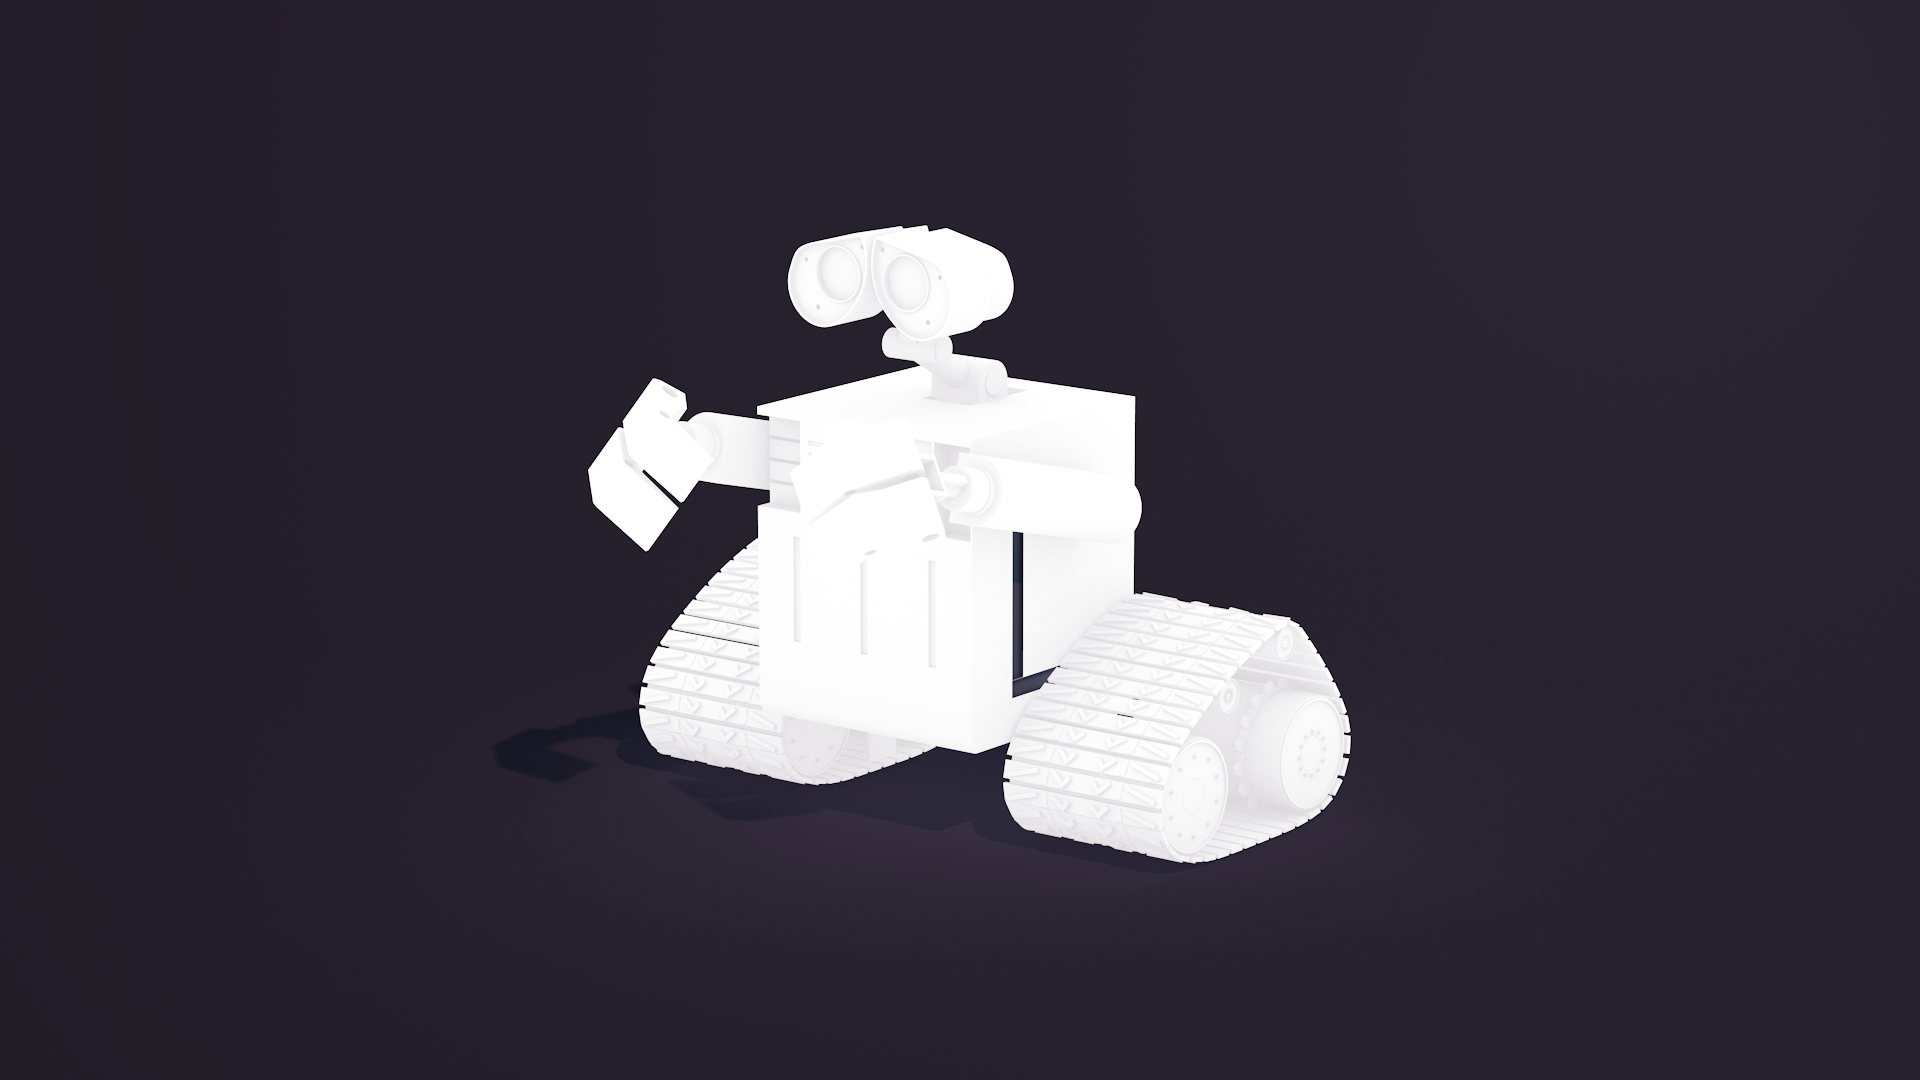 walle_character_final_03-squashed.png